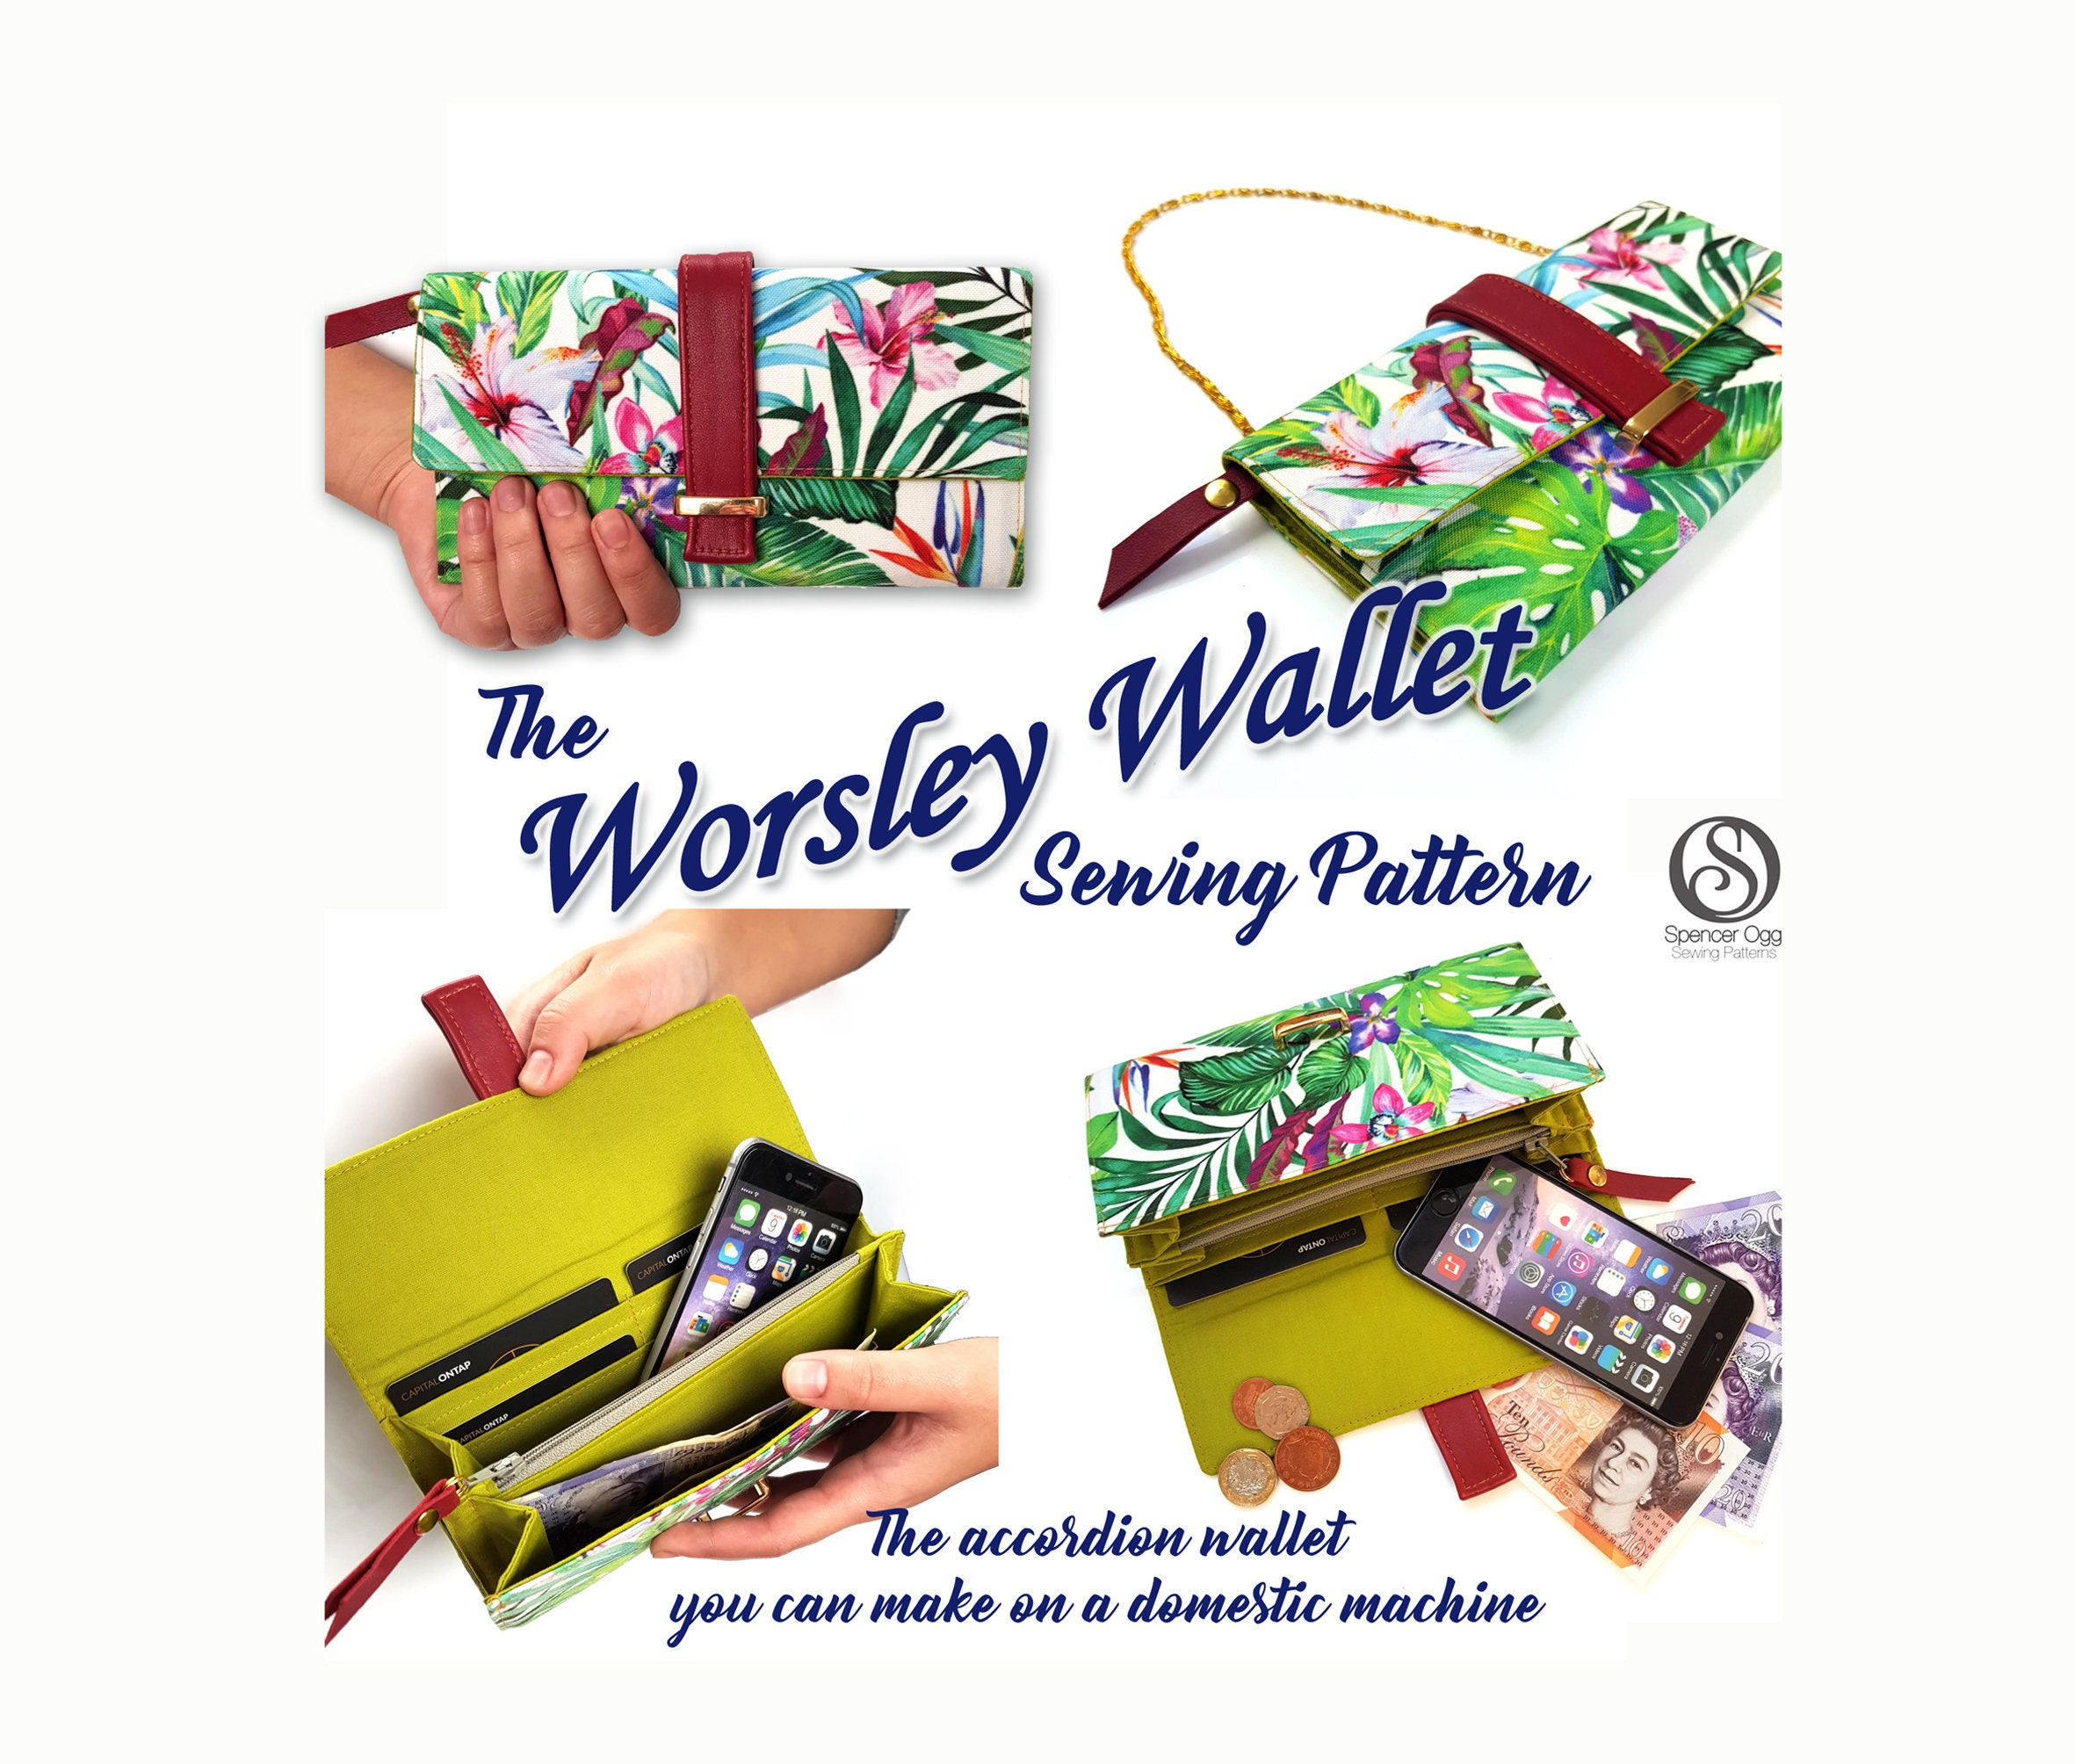 Wallet sewing pattern. The Worsley Wallet | Etsy